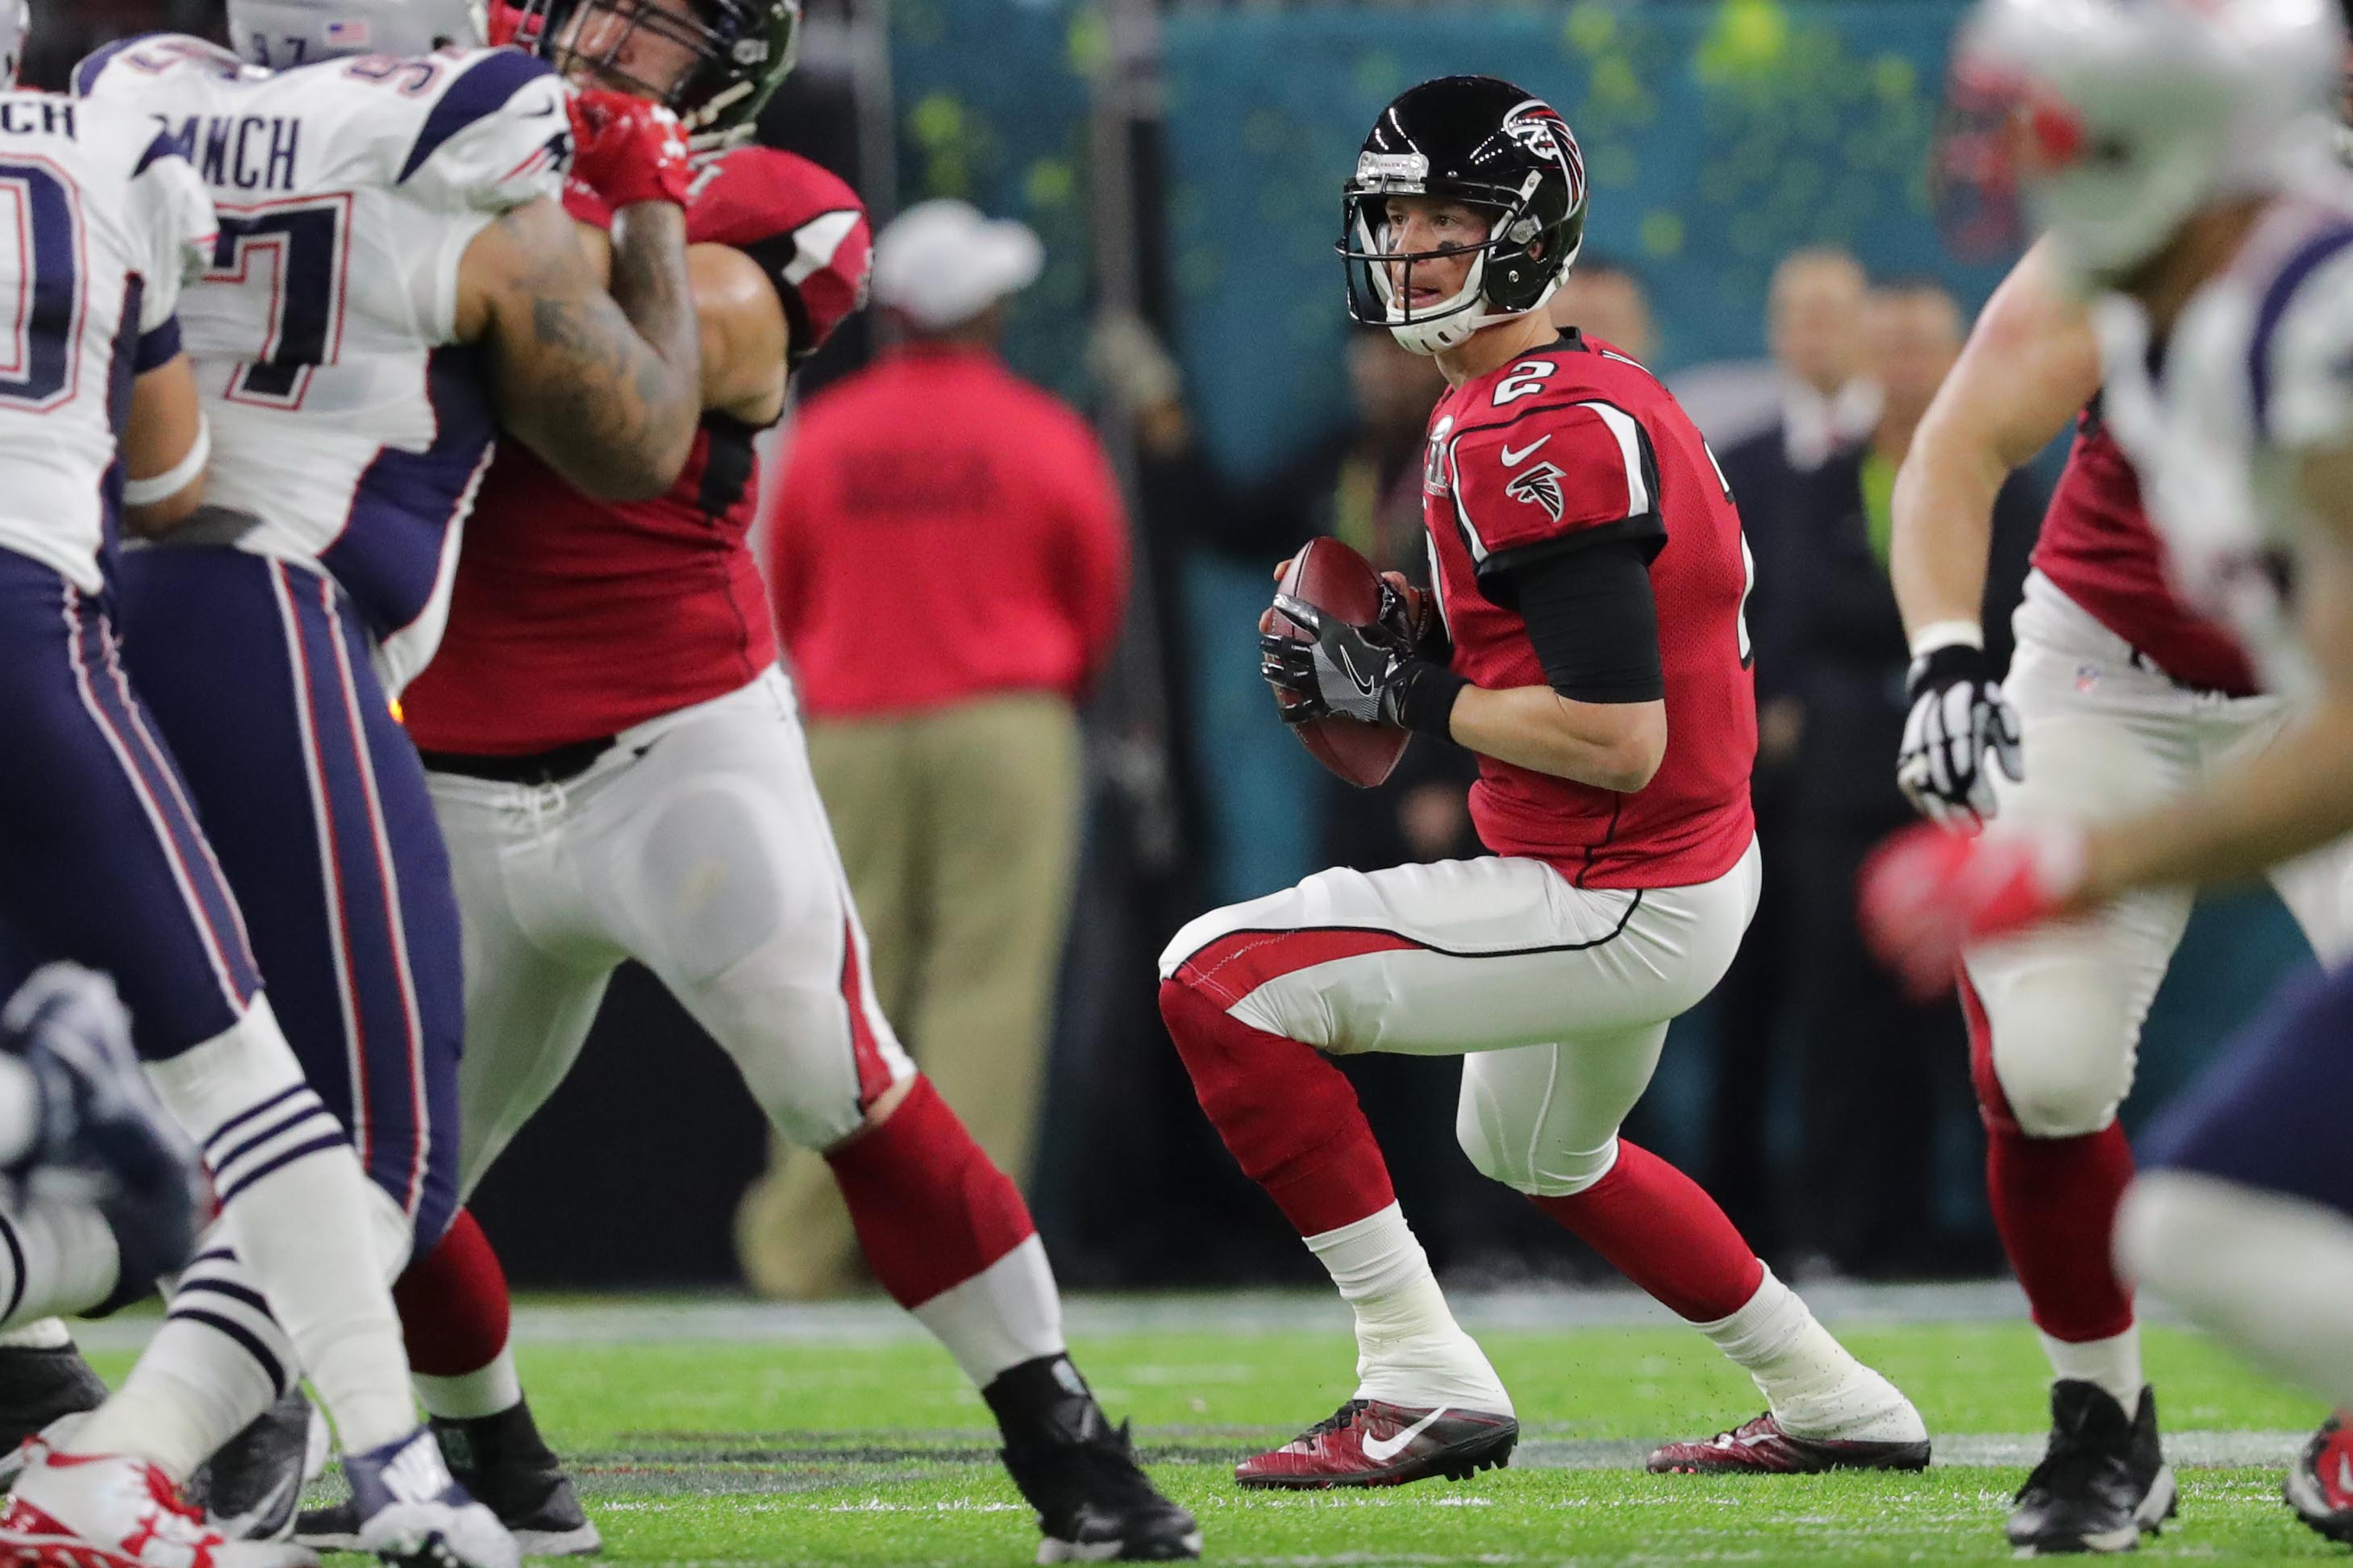 Feb 5, 2017; Houston, TX, USA; Atlanta Falcons quarterback Matt Ryan (2) looks to pass during the second quarter against the New England Patriots during Super Bowl LI at NRG Stadium. Mandatory Credit: Dan Powers-USA TODAY Sports